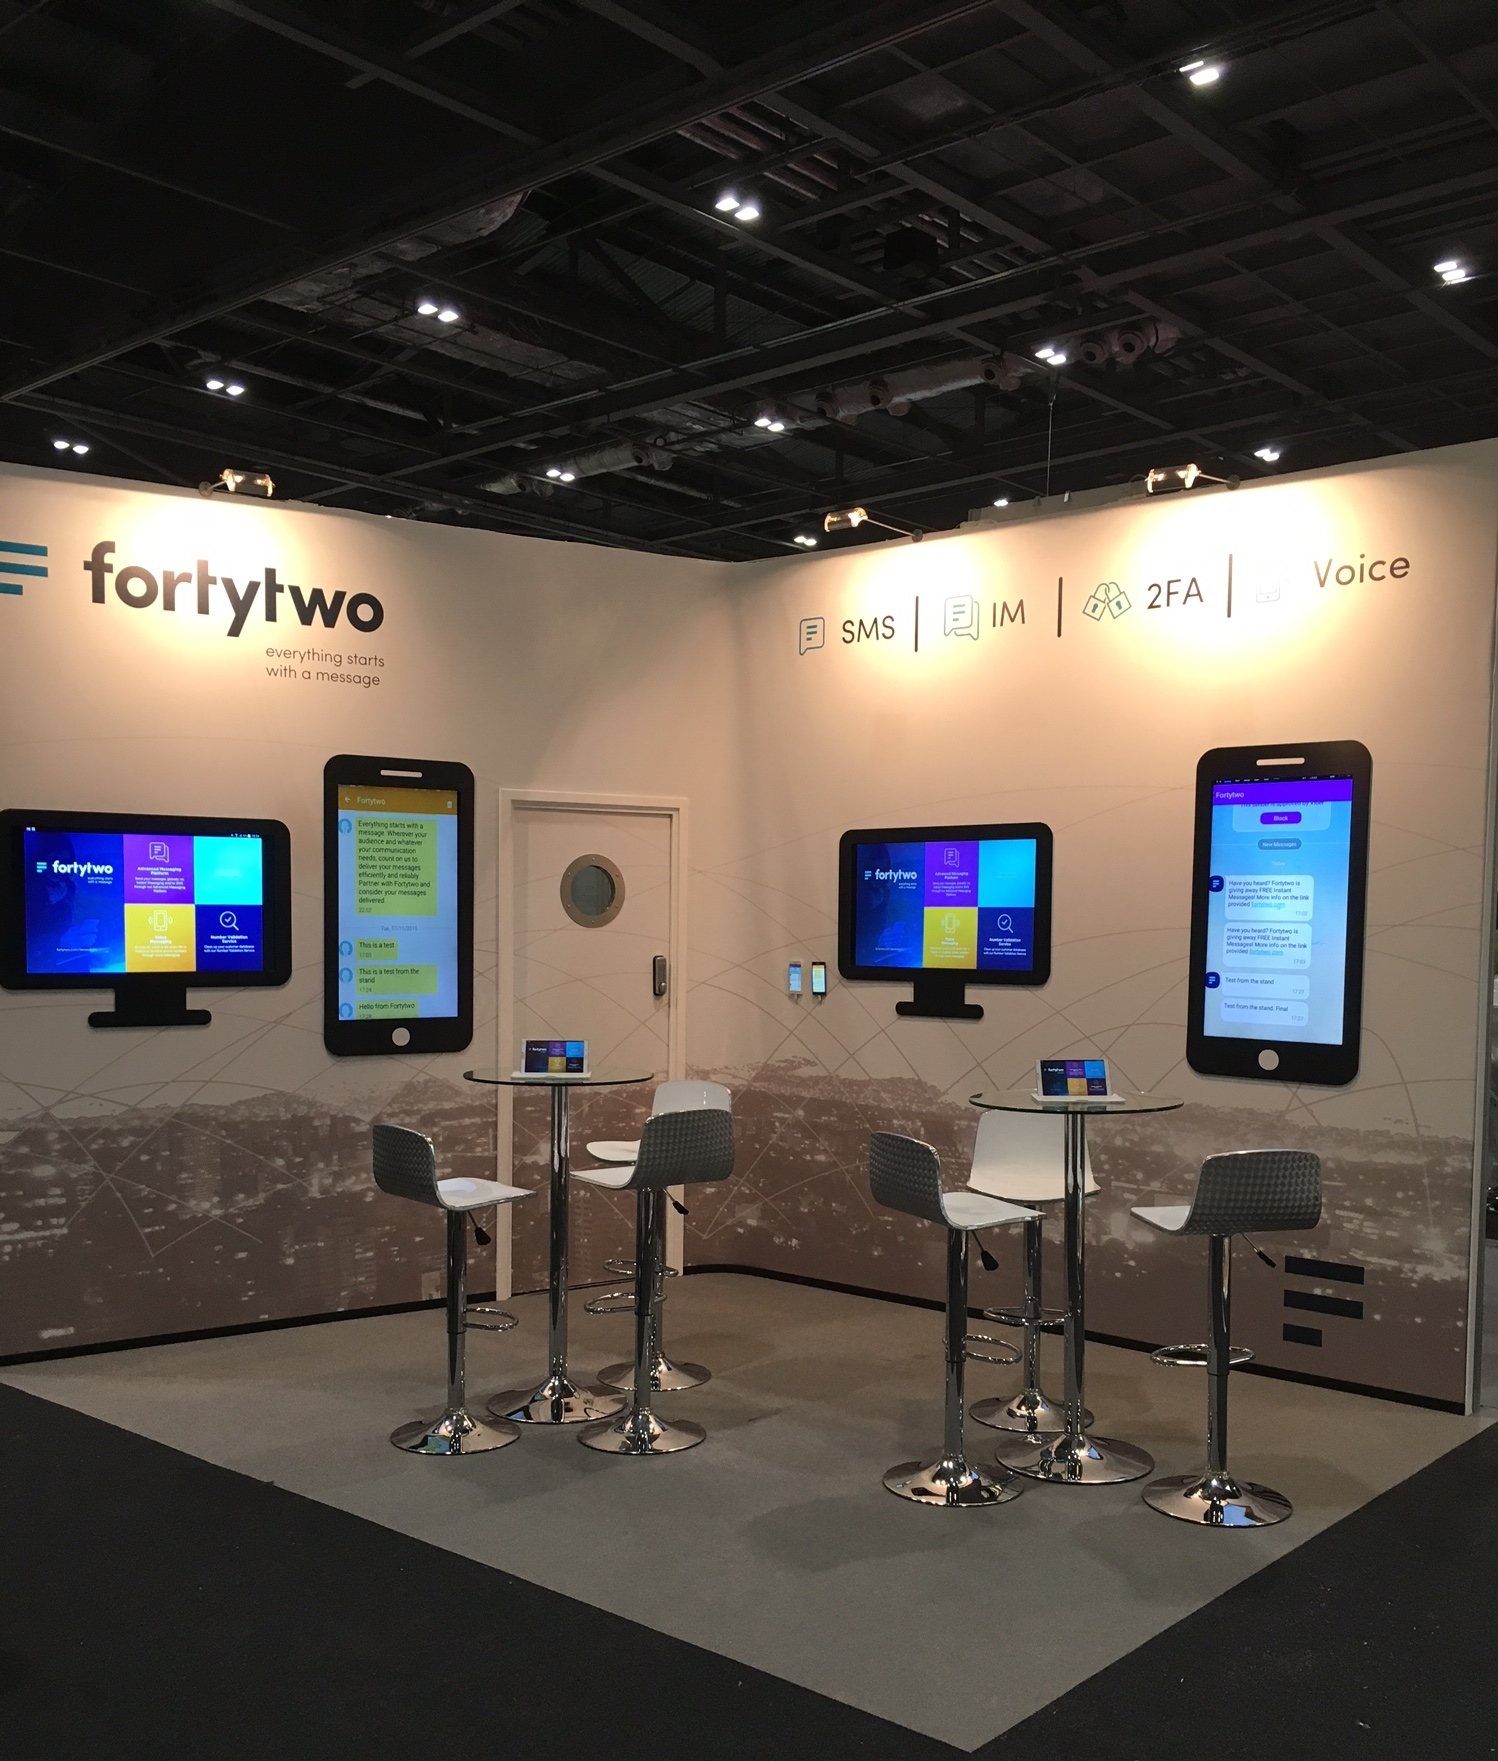 Exhibition Stand Fitter Jobs London : Fortytwo appsworld london expose designs exhibition